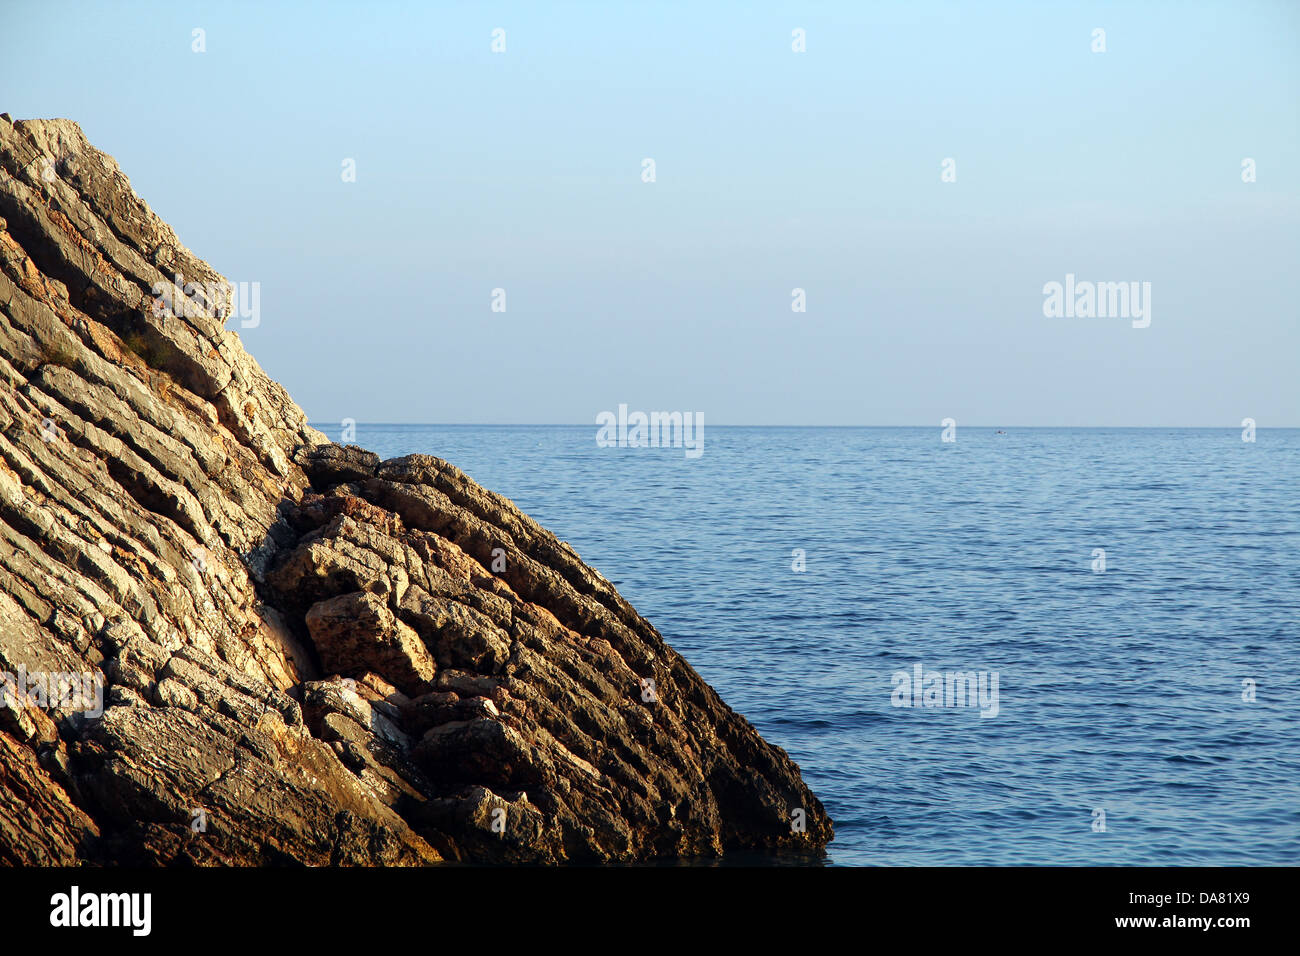 Old cliff on the coast of Adriatic see in Montenegro. - Stock Image